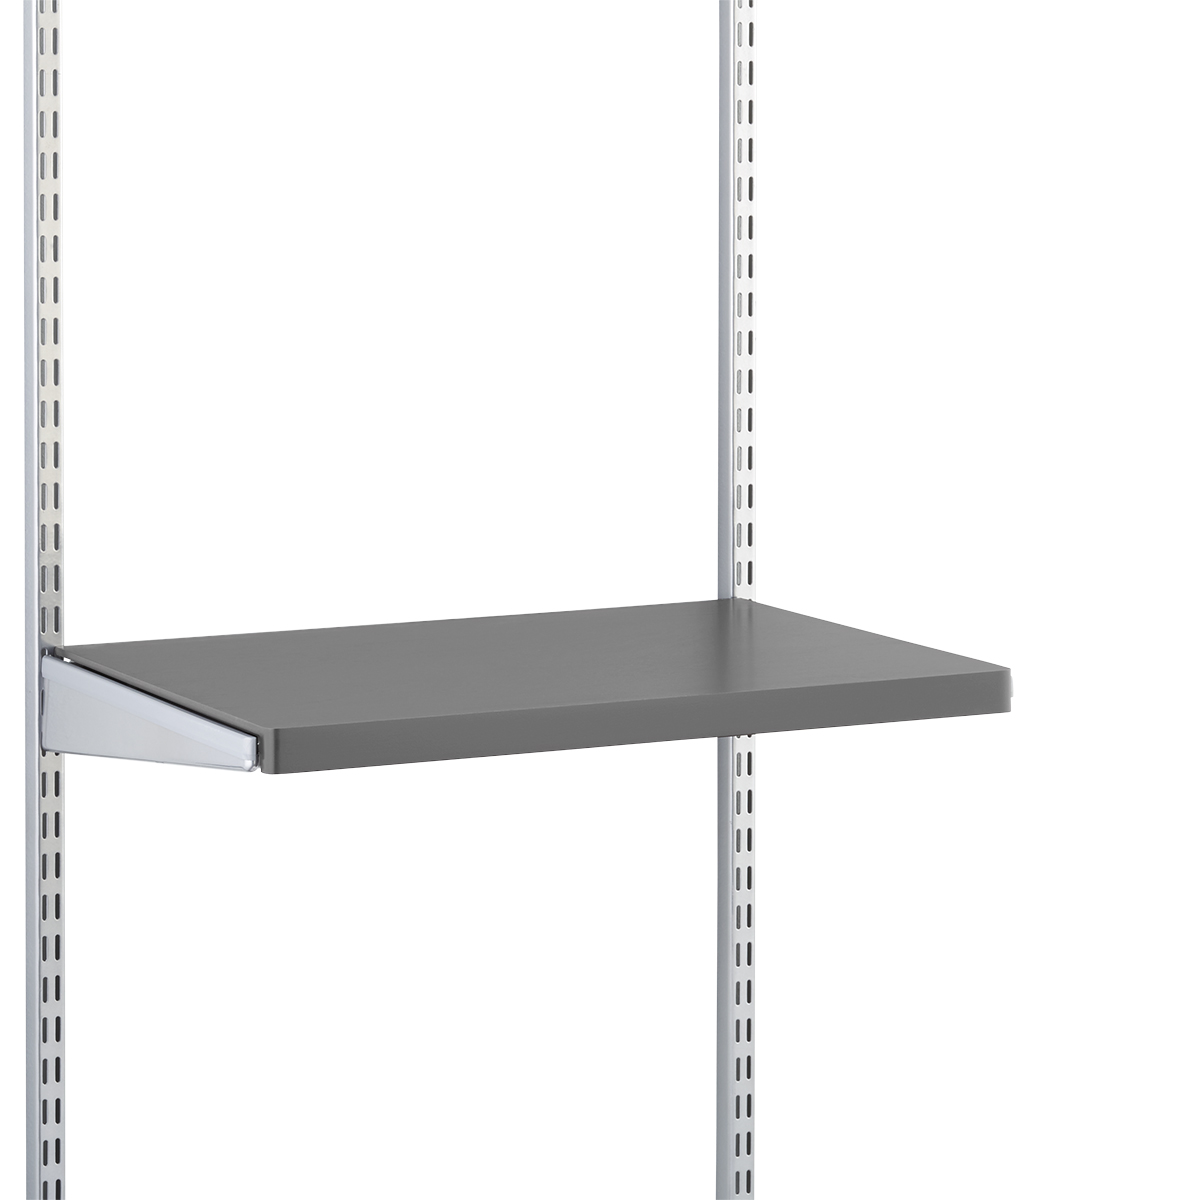 Grey Elfa Décor Gliding Shelf